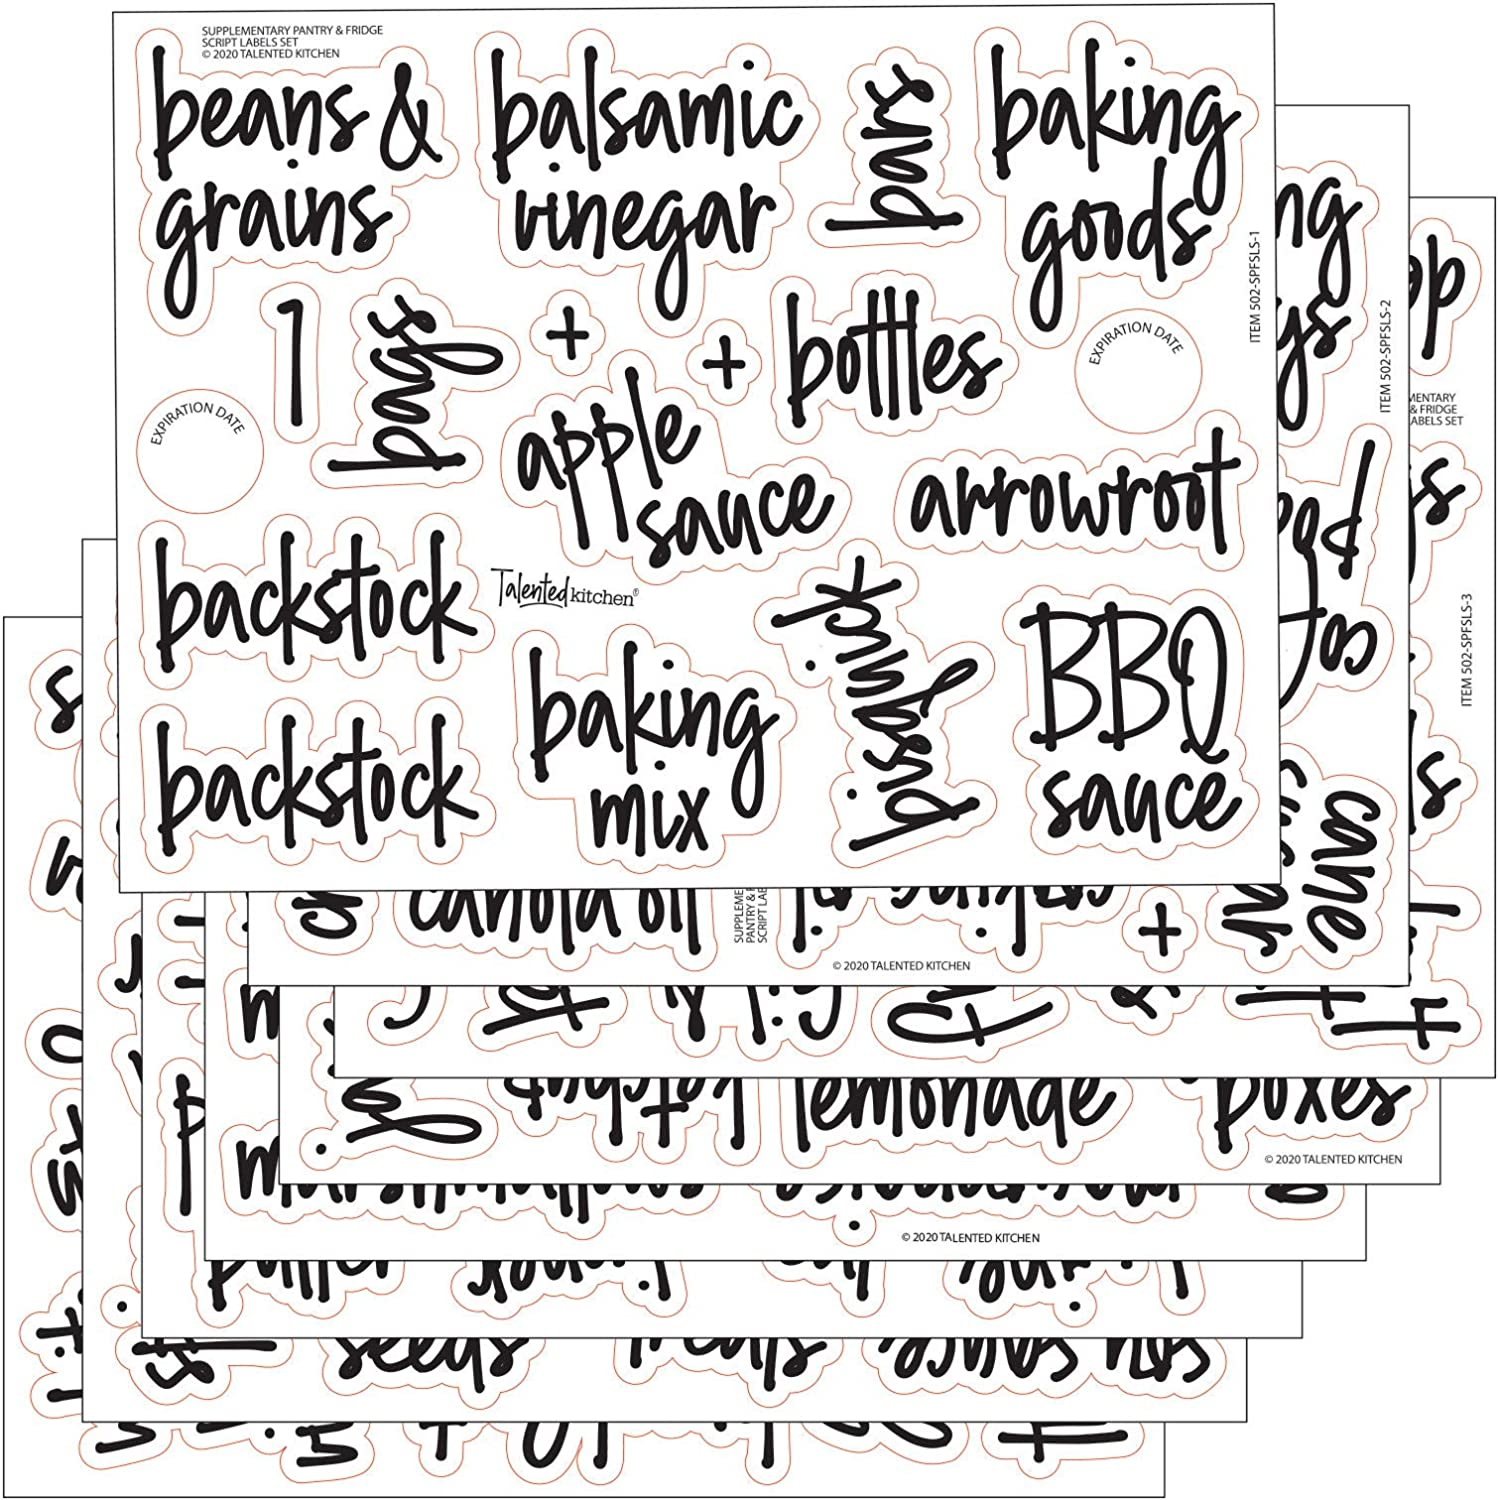 Talented Kitchen 158 Script Supplementary Pantry & Fridge Labels – Black Pantry Label Sticker Ingredients. Water Resistant, Food Jar Labels Decals Pantry Organization Storage